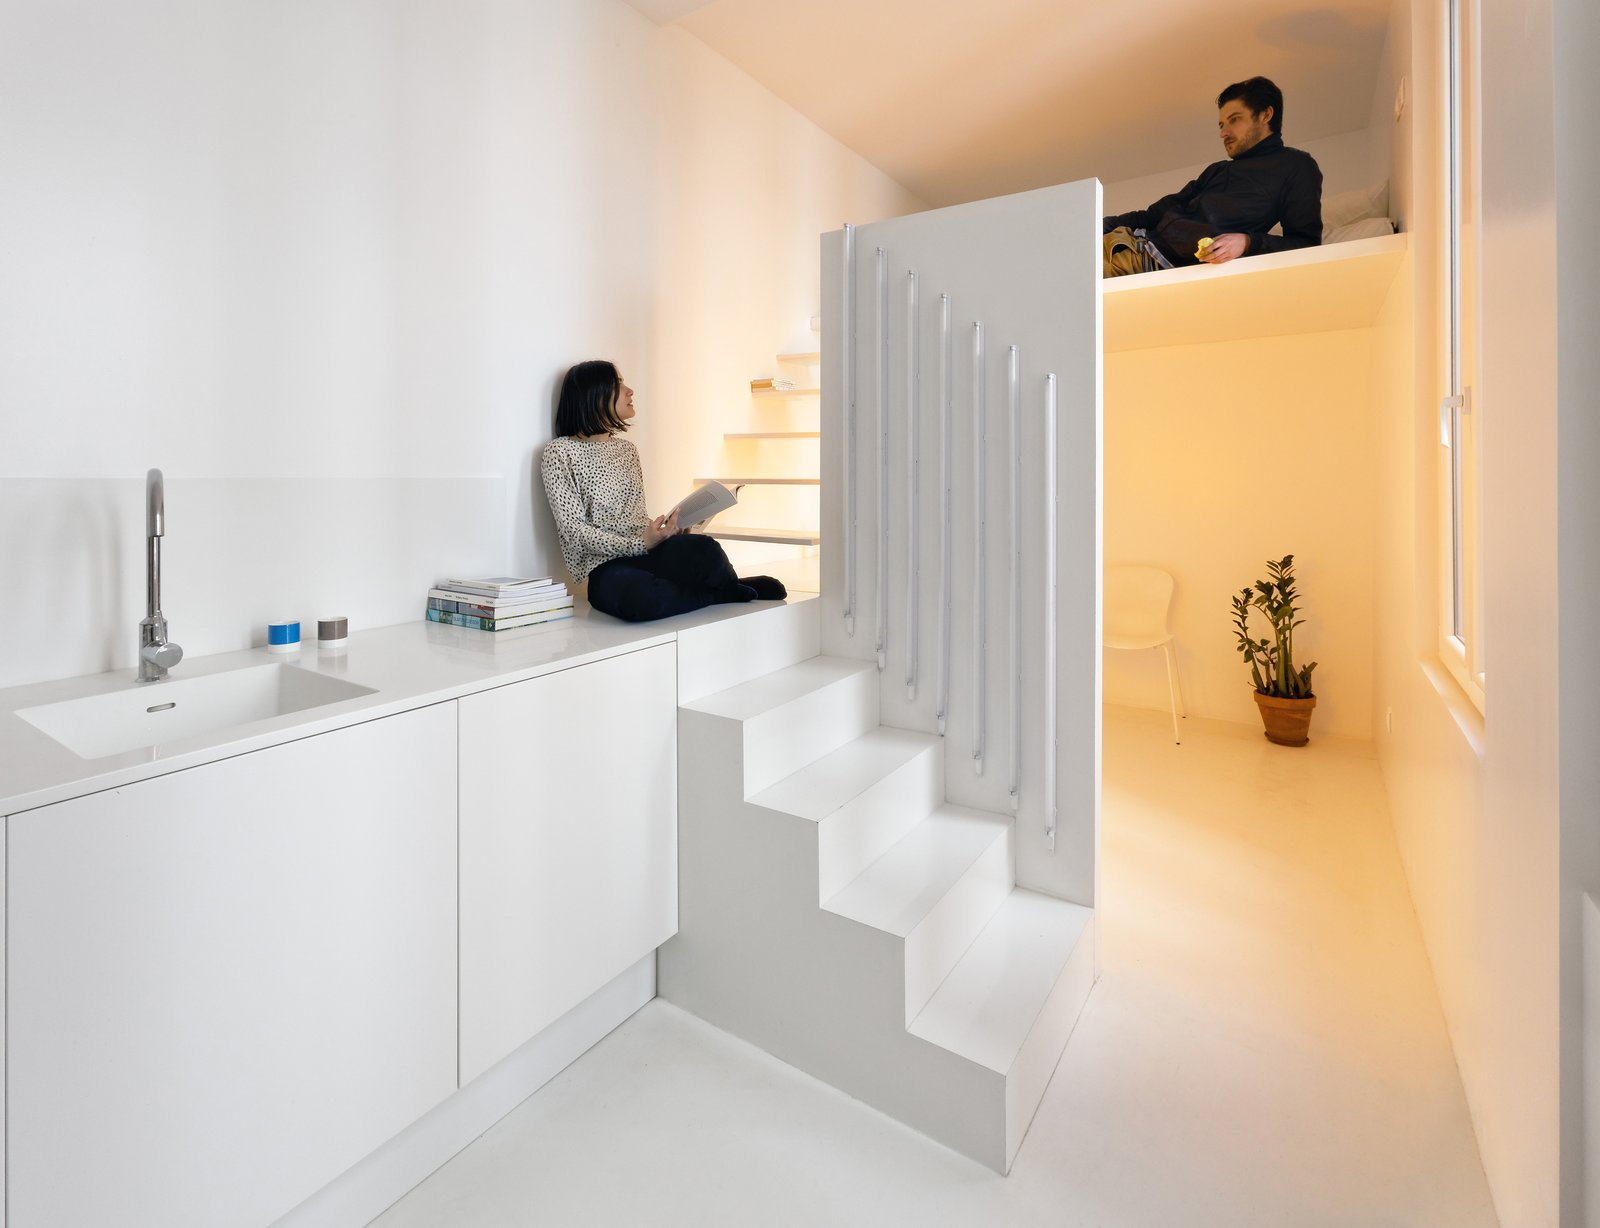 Appartement Spectral pp 24-25 Raphael Betillon Architects  Photo 2 of 16 in Gestalten's New Book Shows How to Transform Small Spaces Into Design Marvels